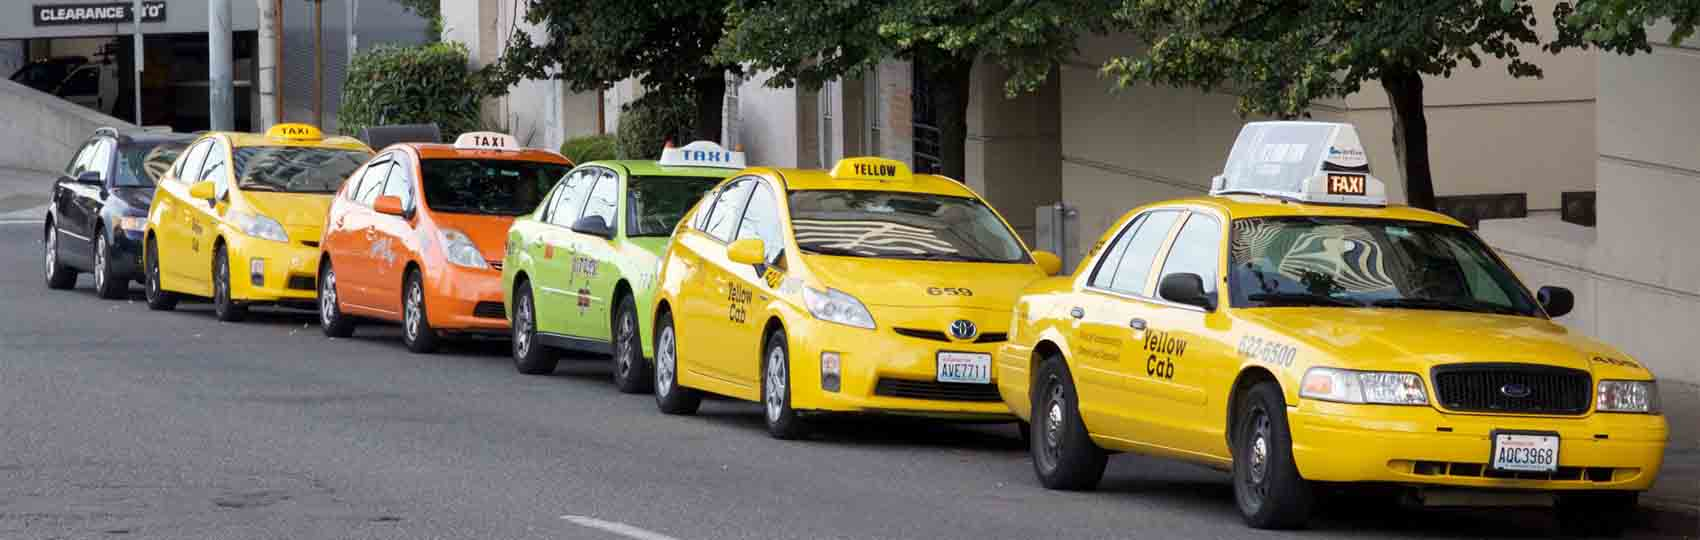 Taxi Washington